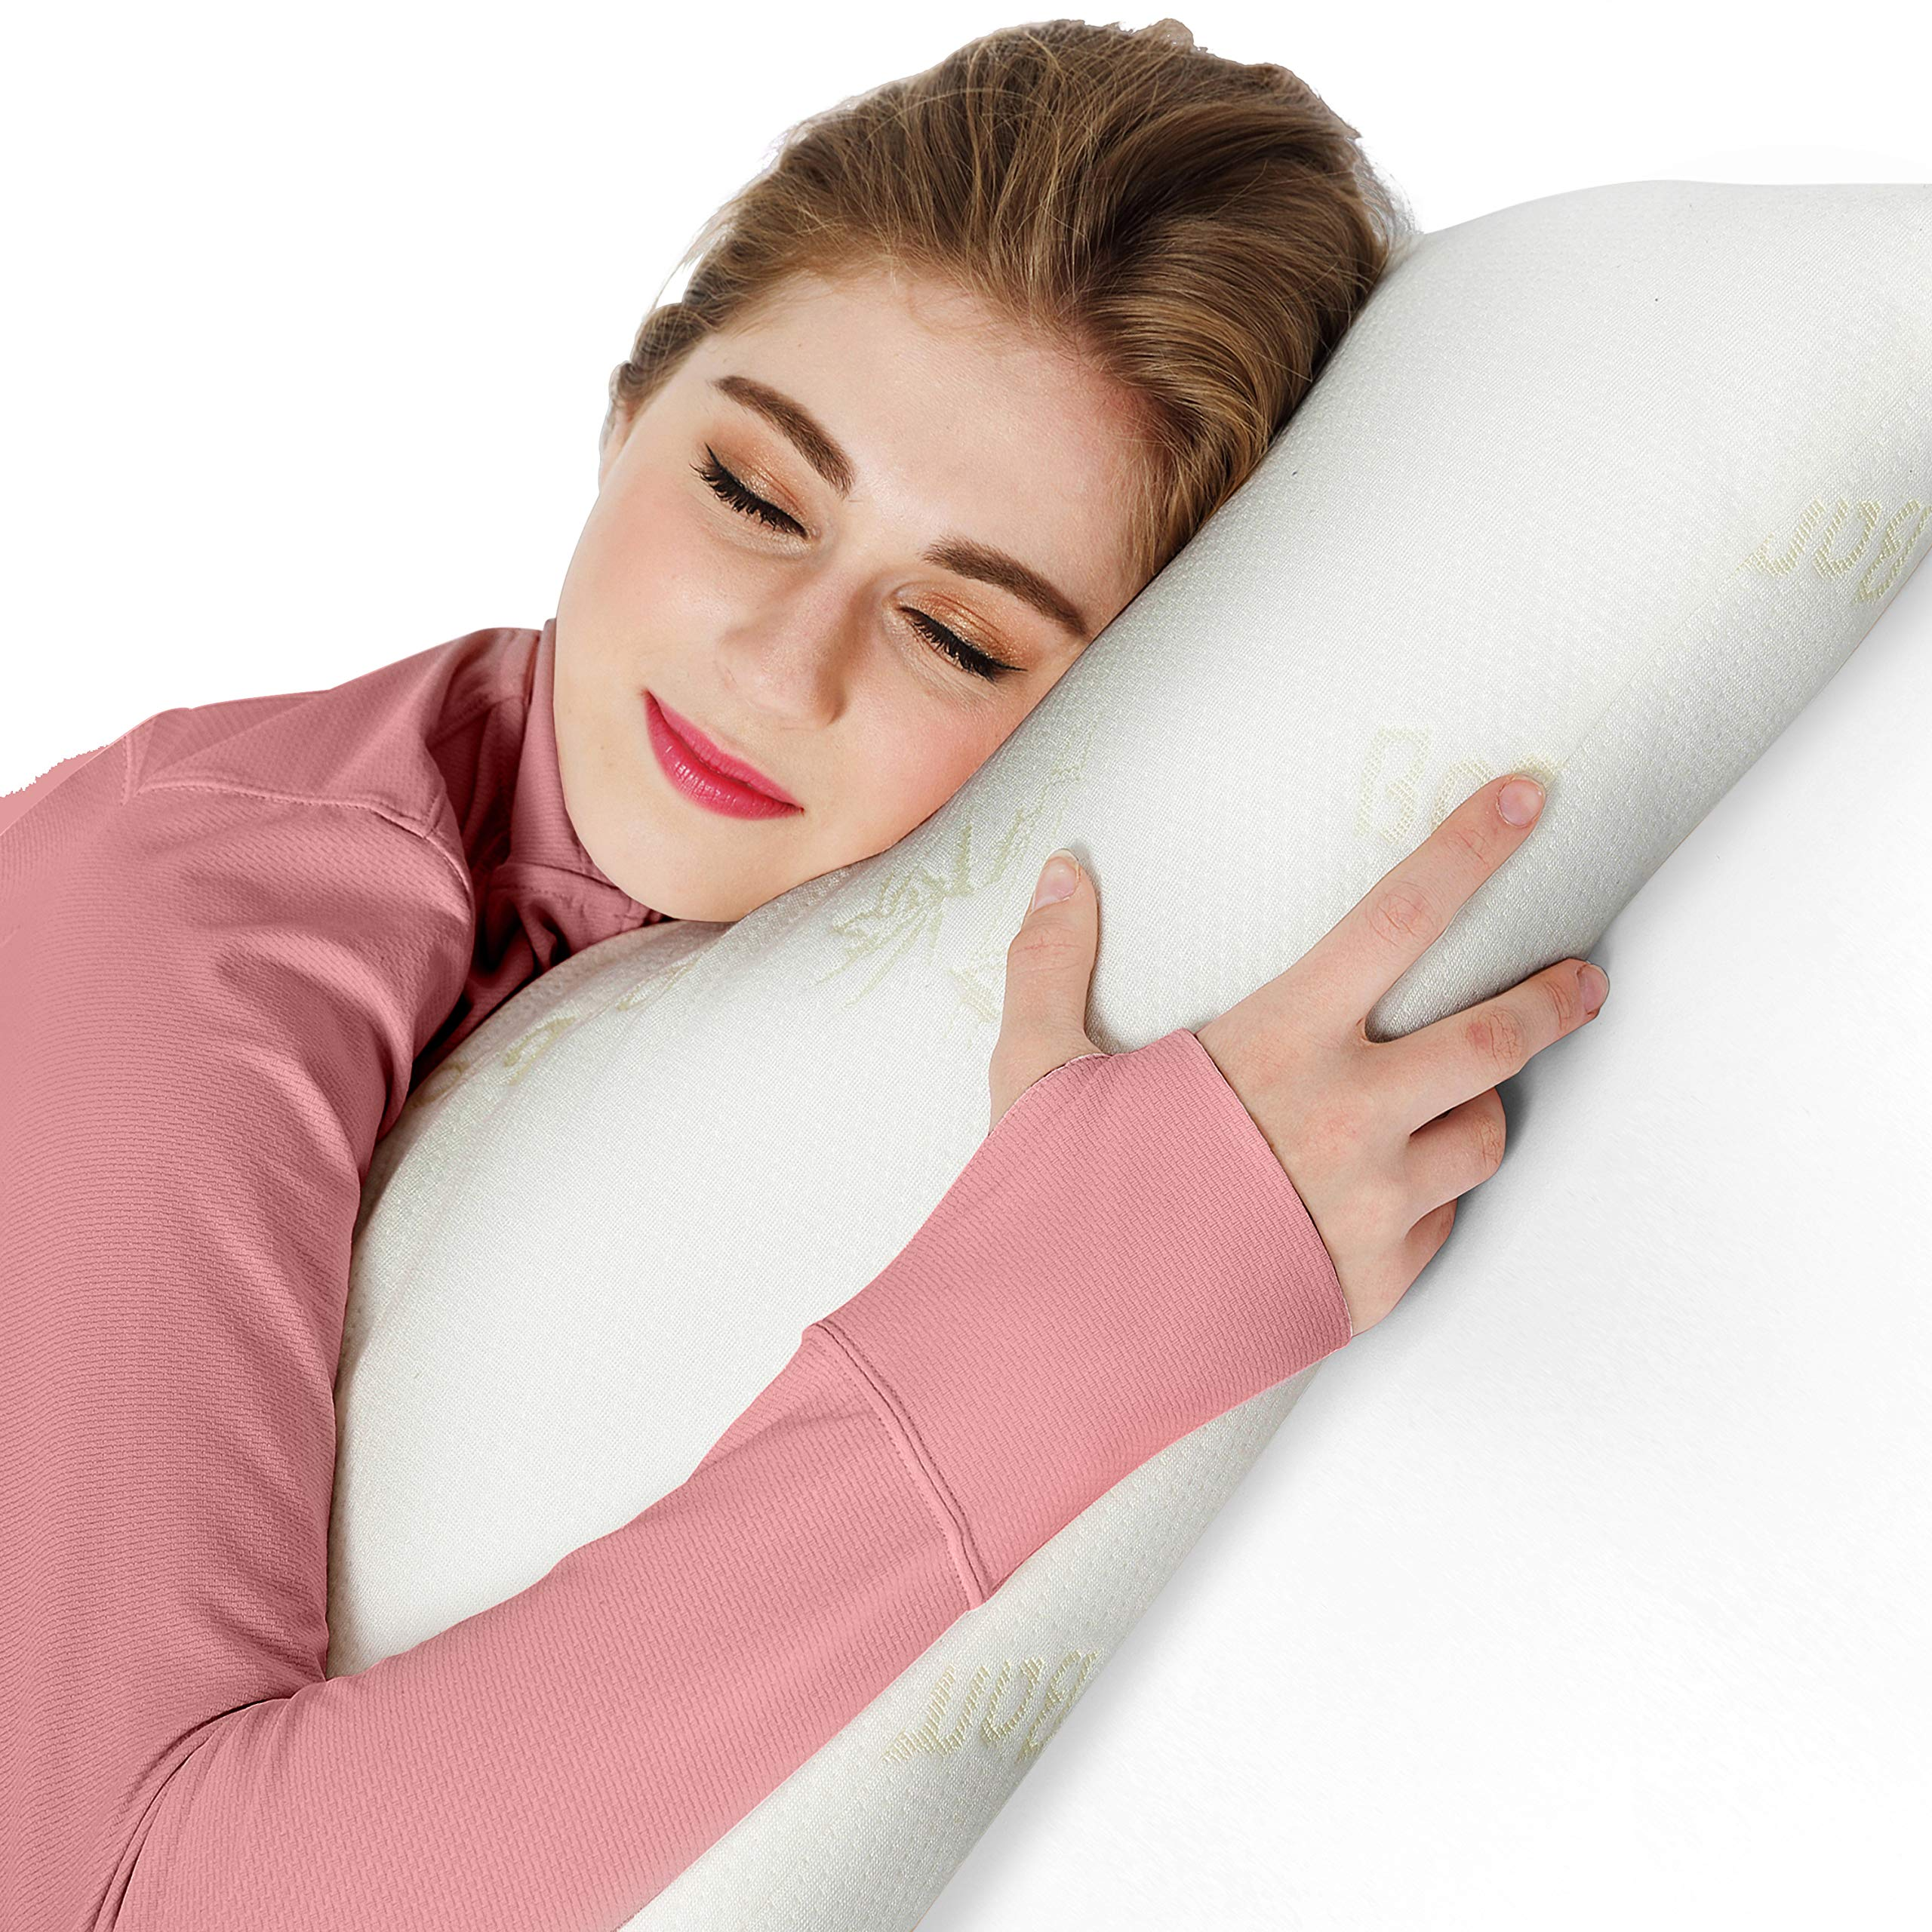 AmazingDreams Full Body Pillow - Side Sleeper Pillow and Pregnancy Pillow with Washable Bamboo Cover by Amazing Dreams (Image #4)